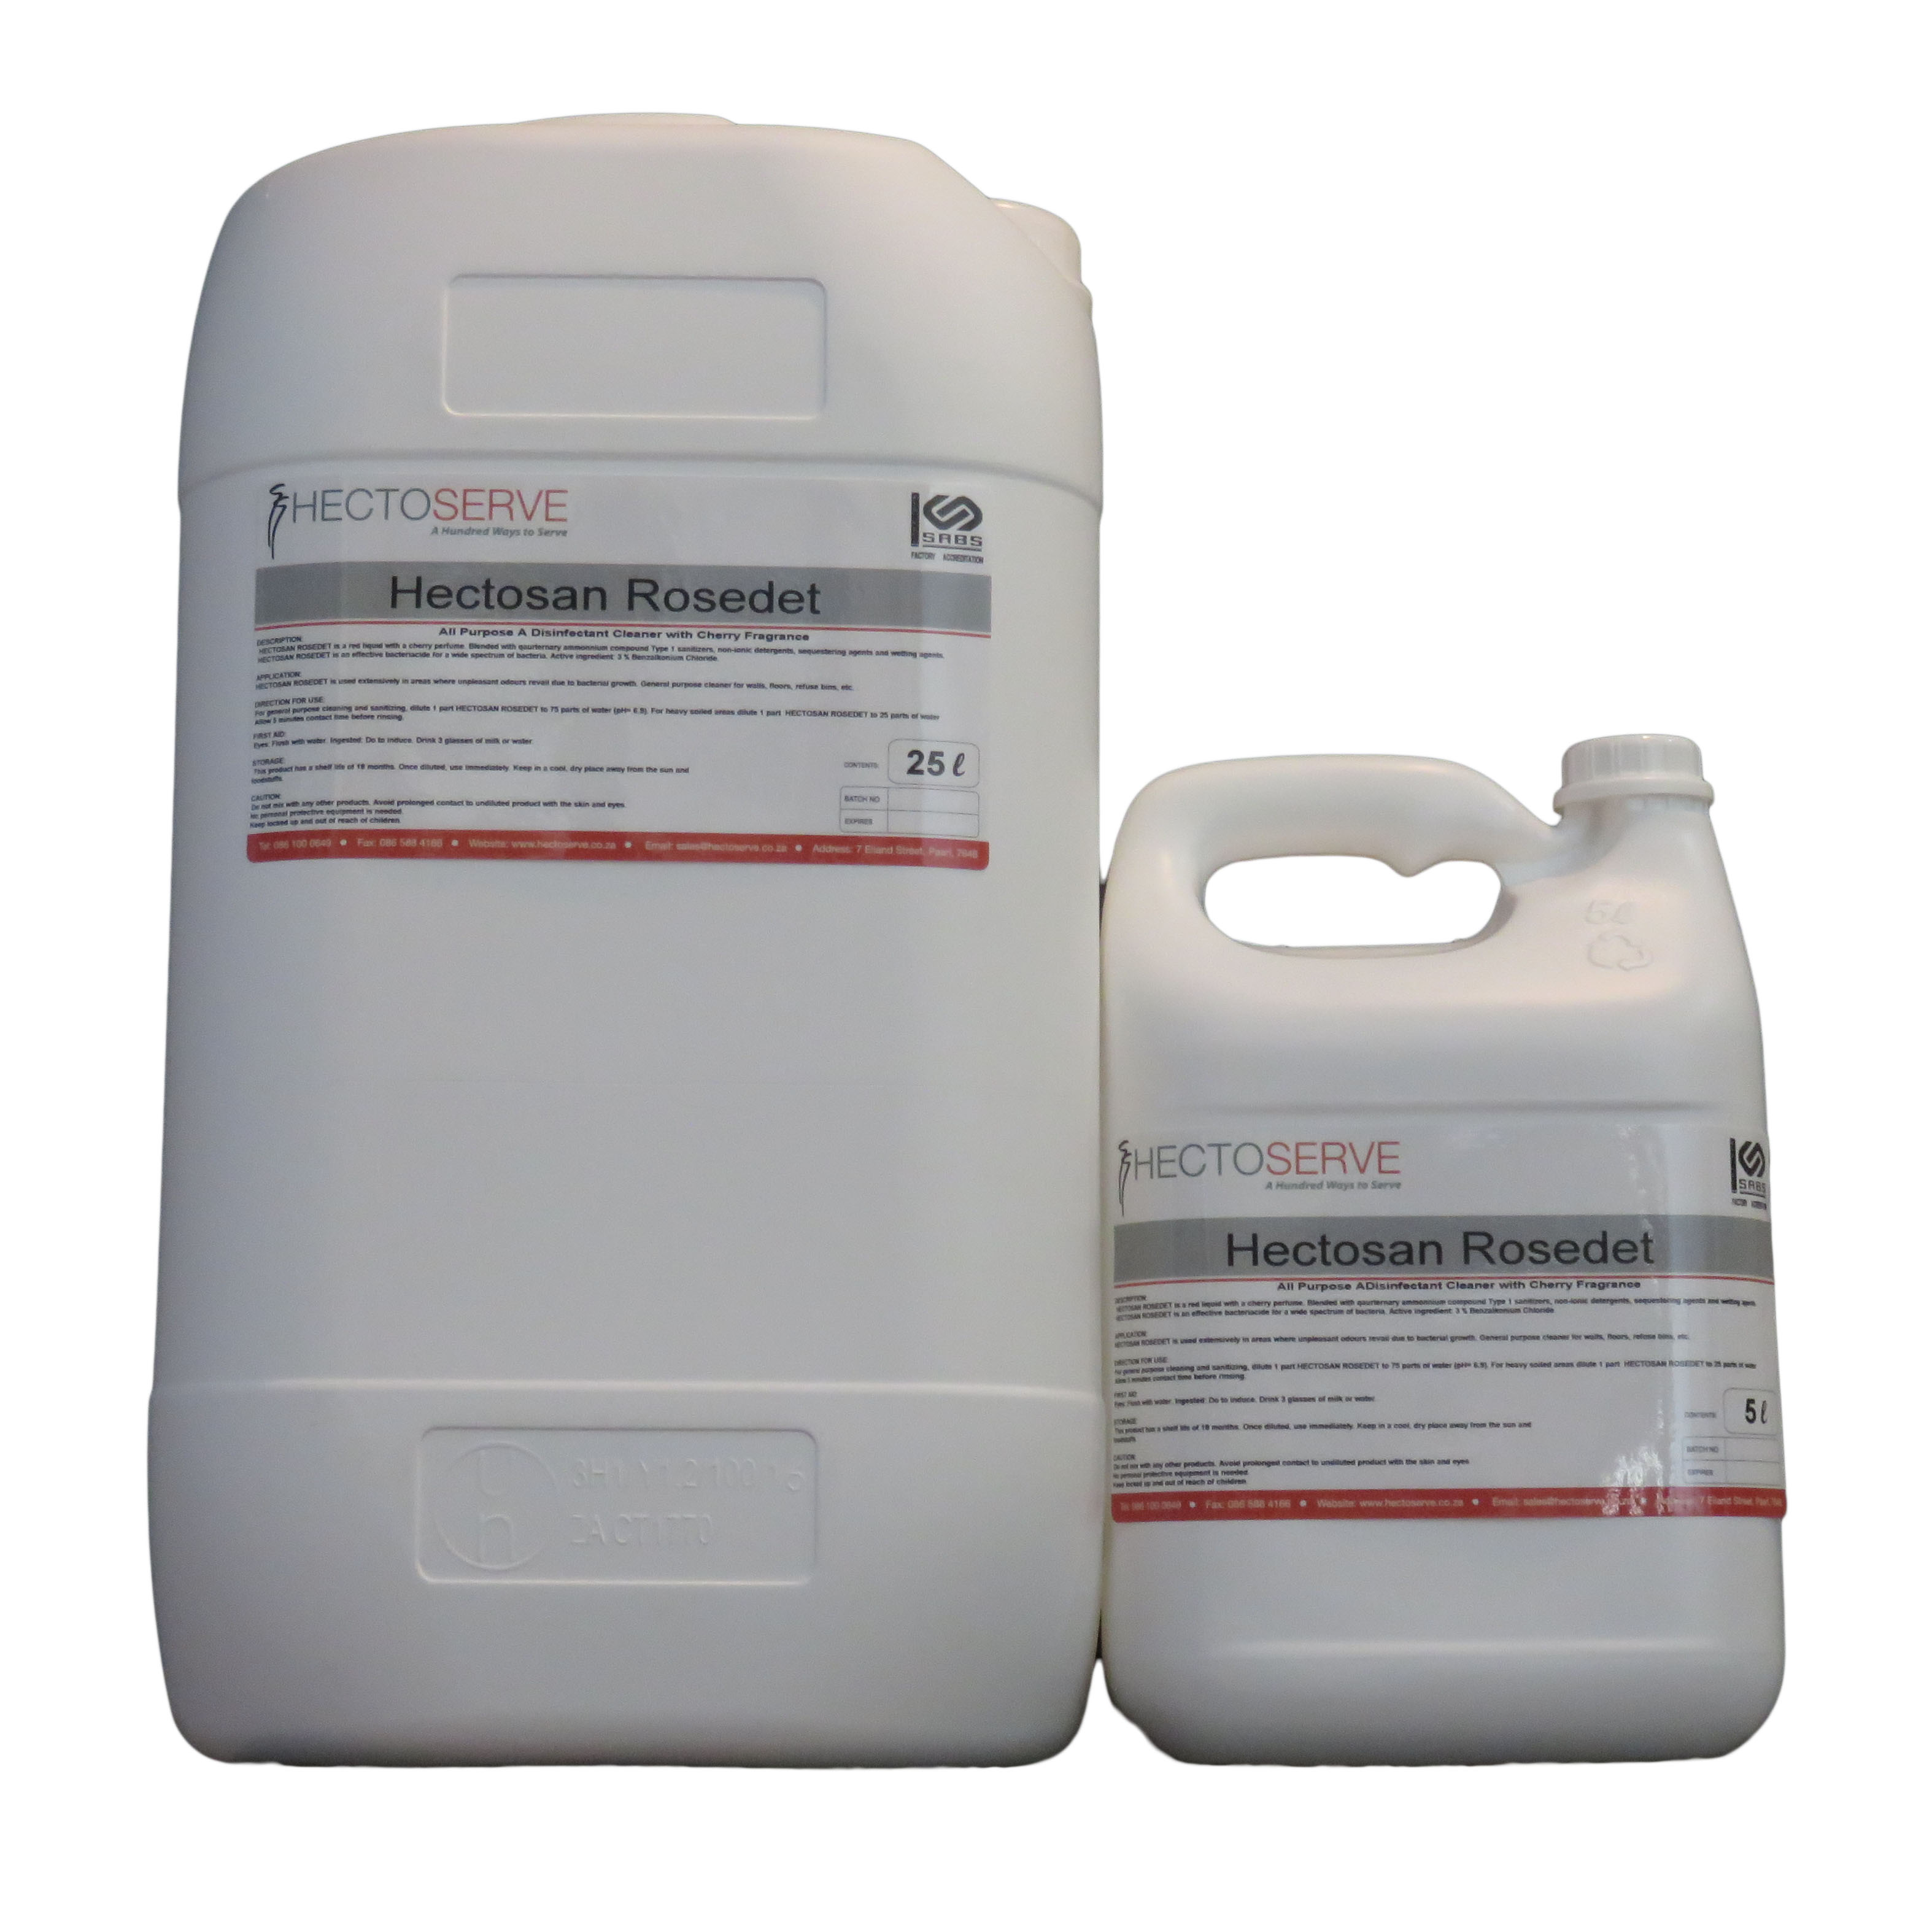 Hectosan Rosedet Disinfectant